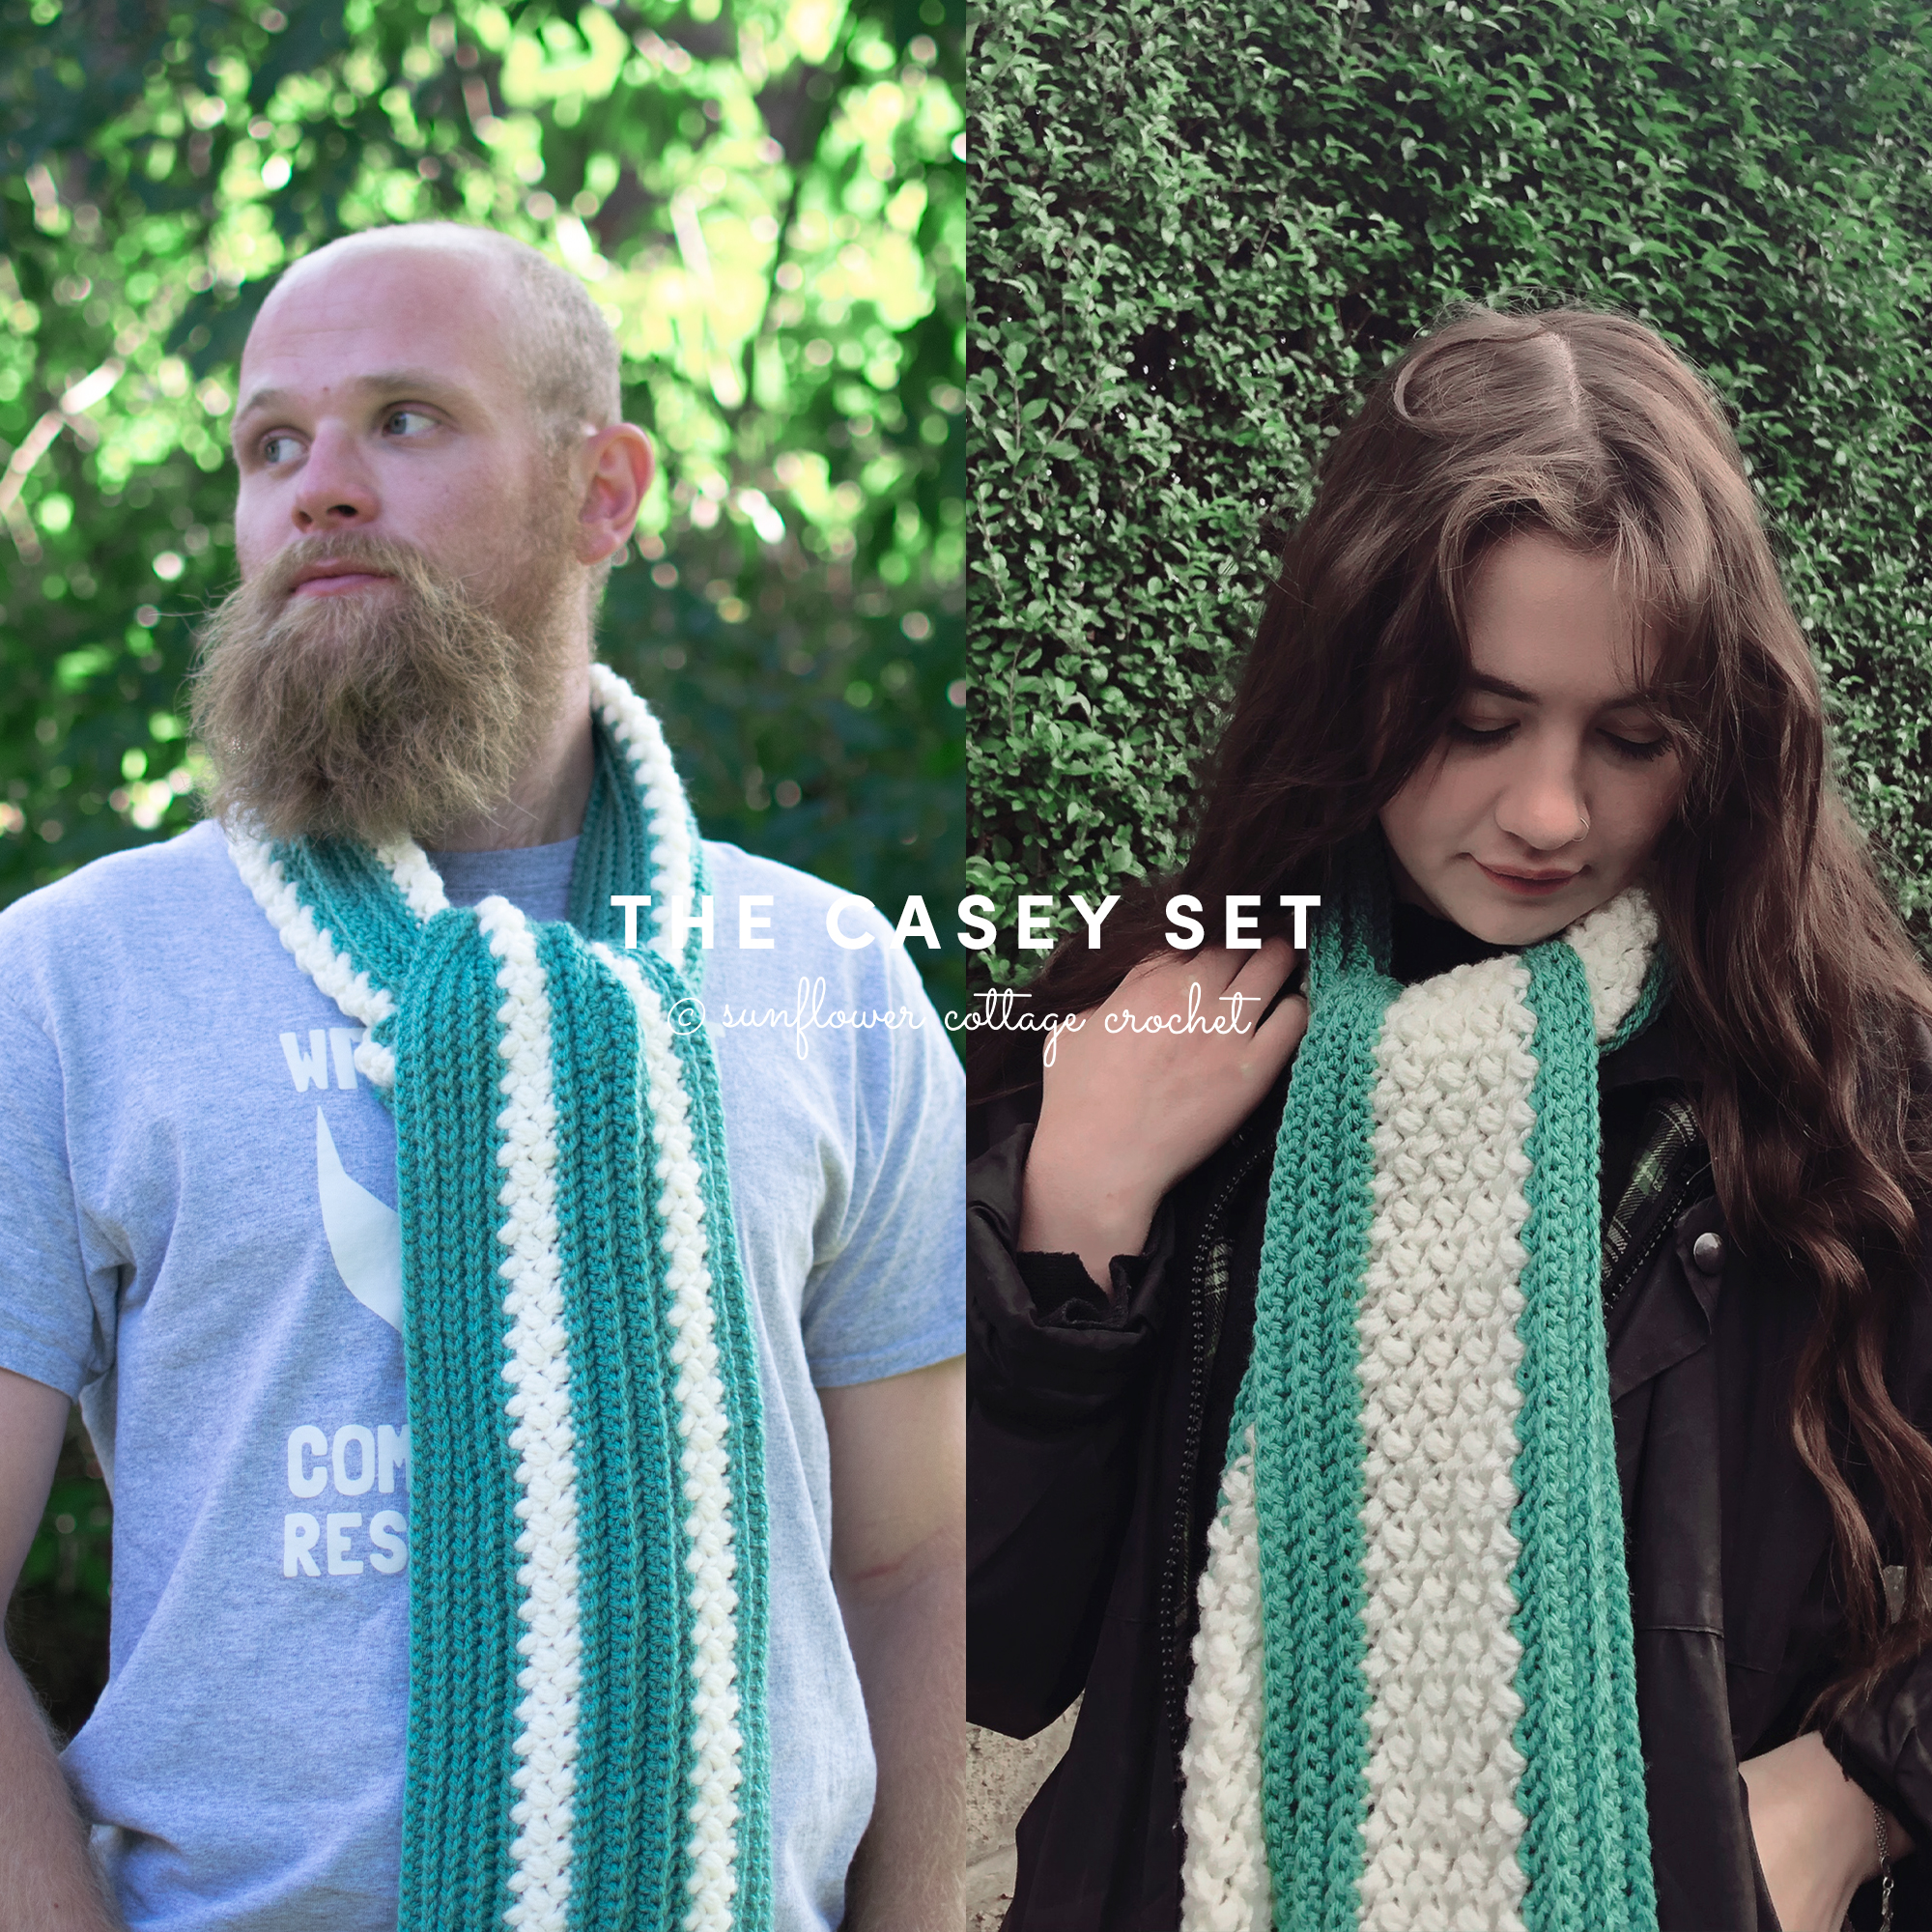 The Casey Set – His and Her's Scarves!